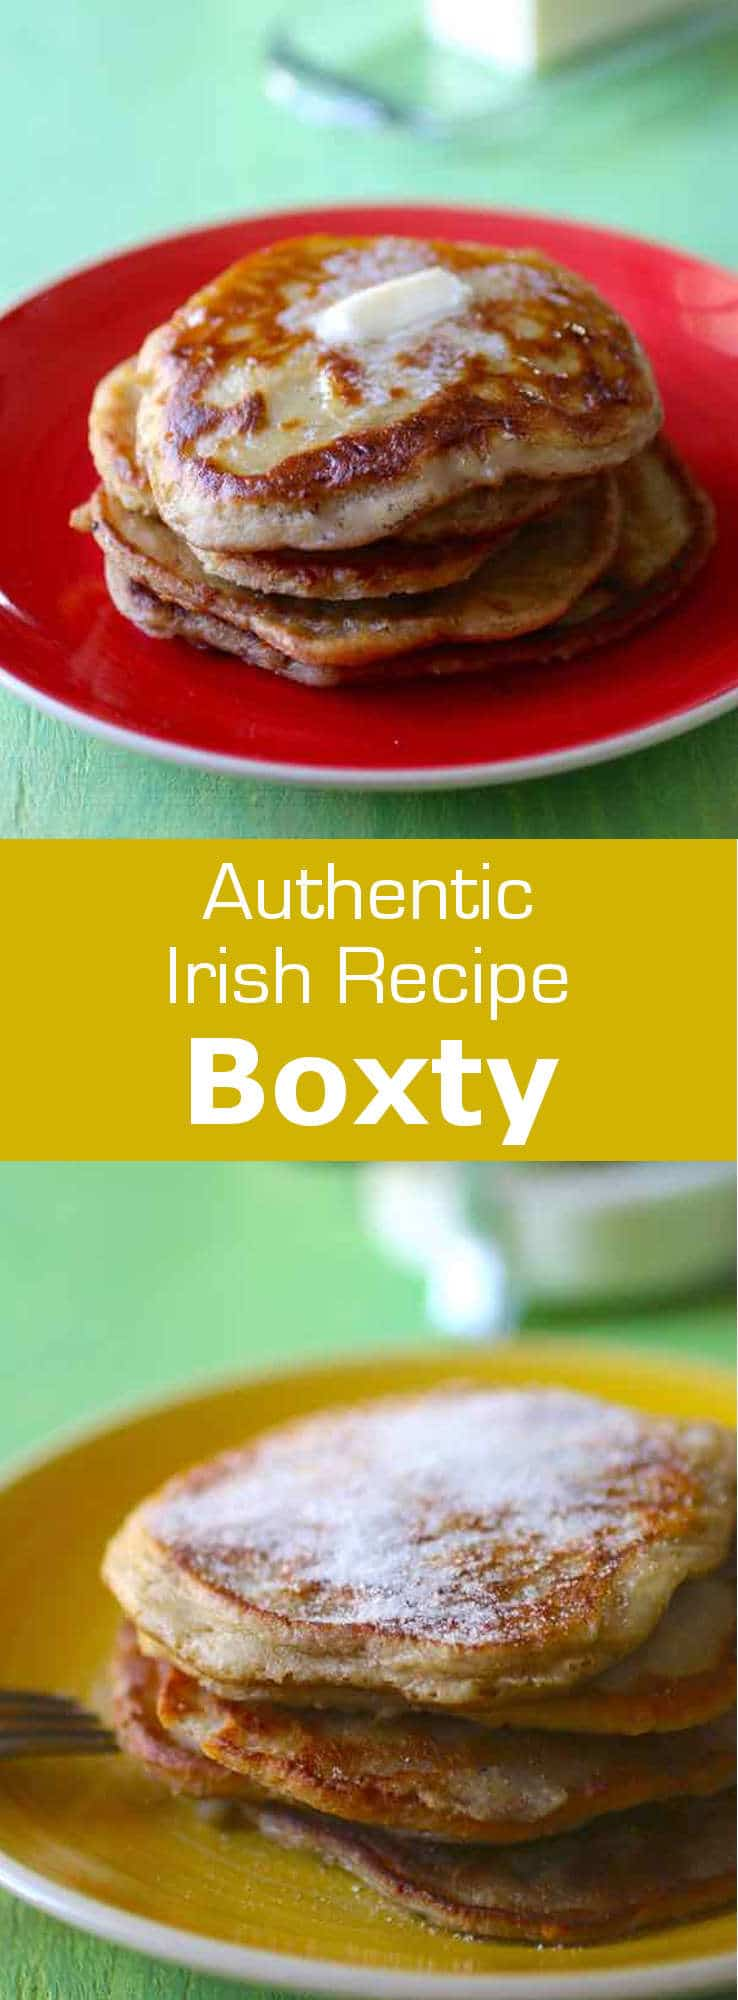 This Irish pancake called boxty is still prepared and eaten for various holidays, such as Halloween and is native to the Celtic countries. #Ireland #Irish #Imbolc #BrigidsDay #pancake #196flavors